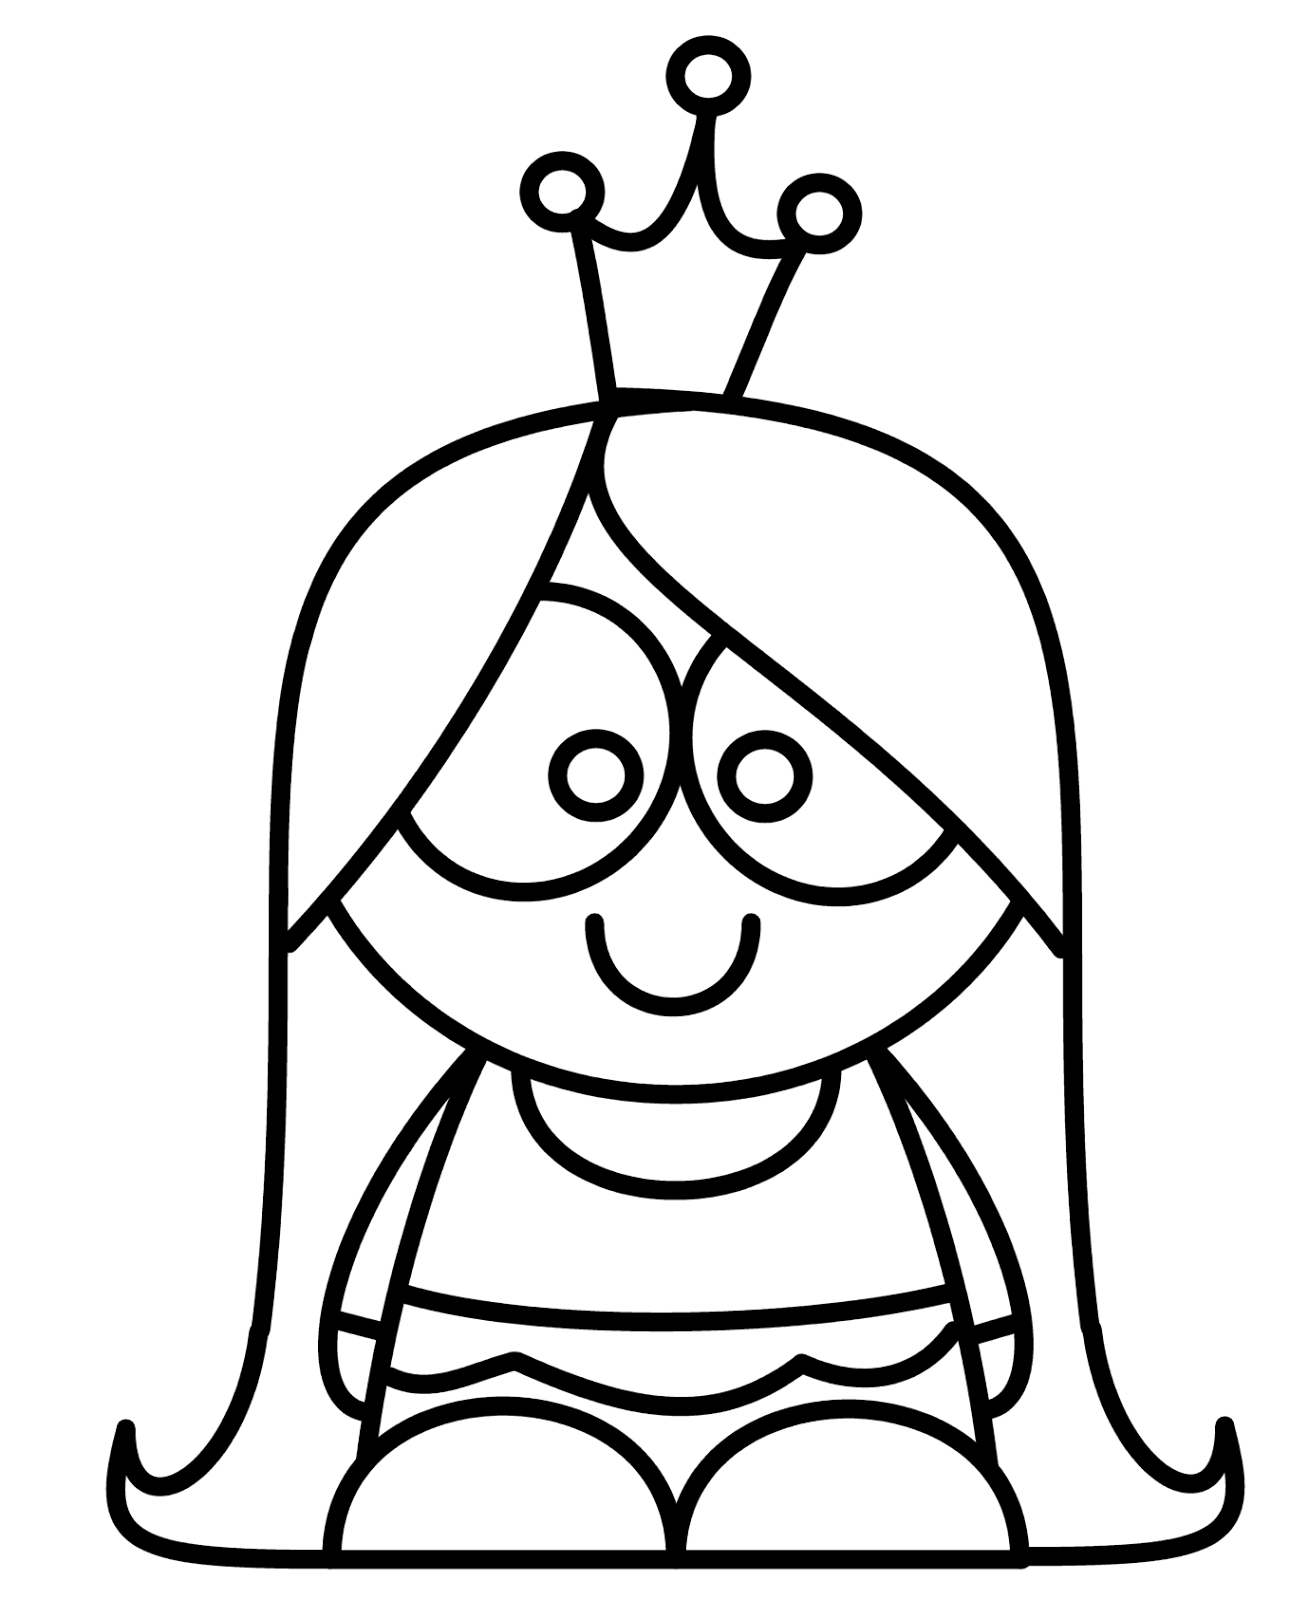 drawing of a princess how to draw princess elsa39s portrait frozen sketchok a drawing of princess